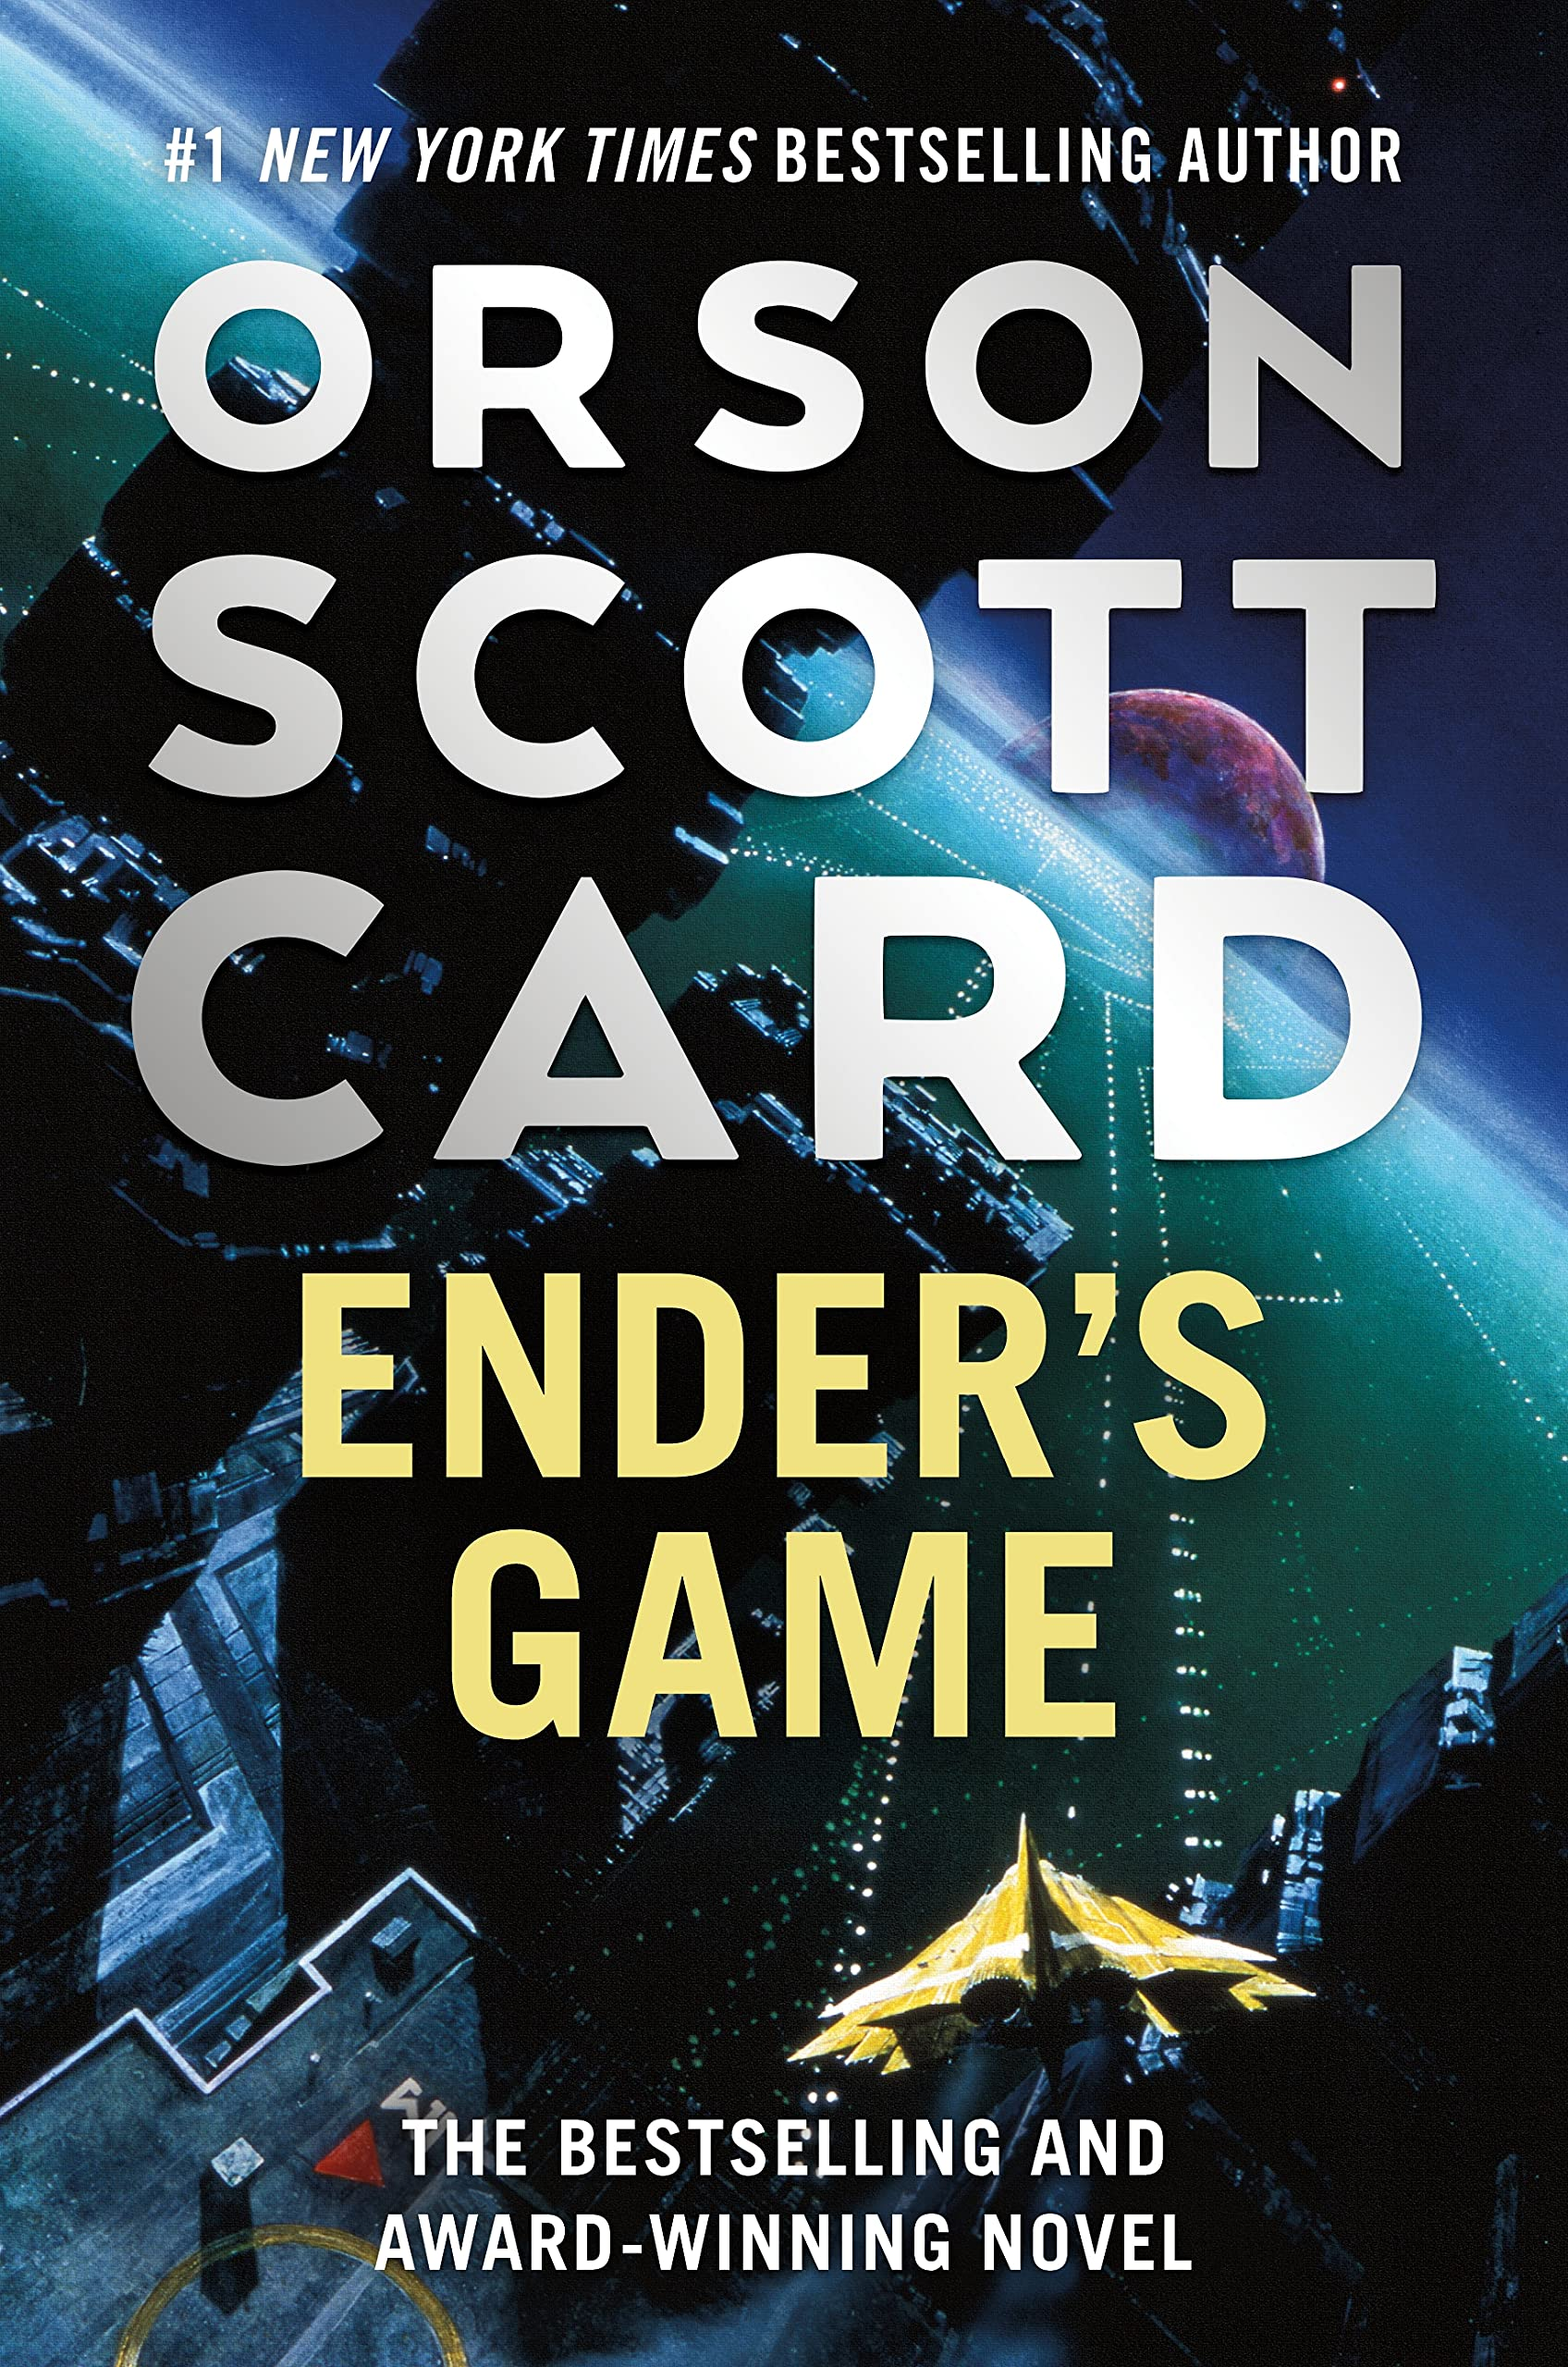 Enders Game  Enders Game Wiki  FANDOM powered by Wikia